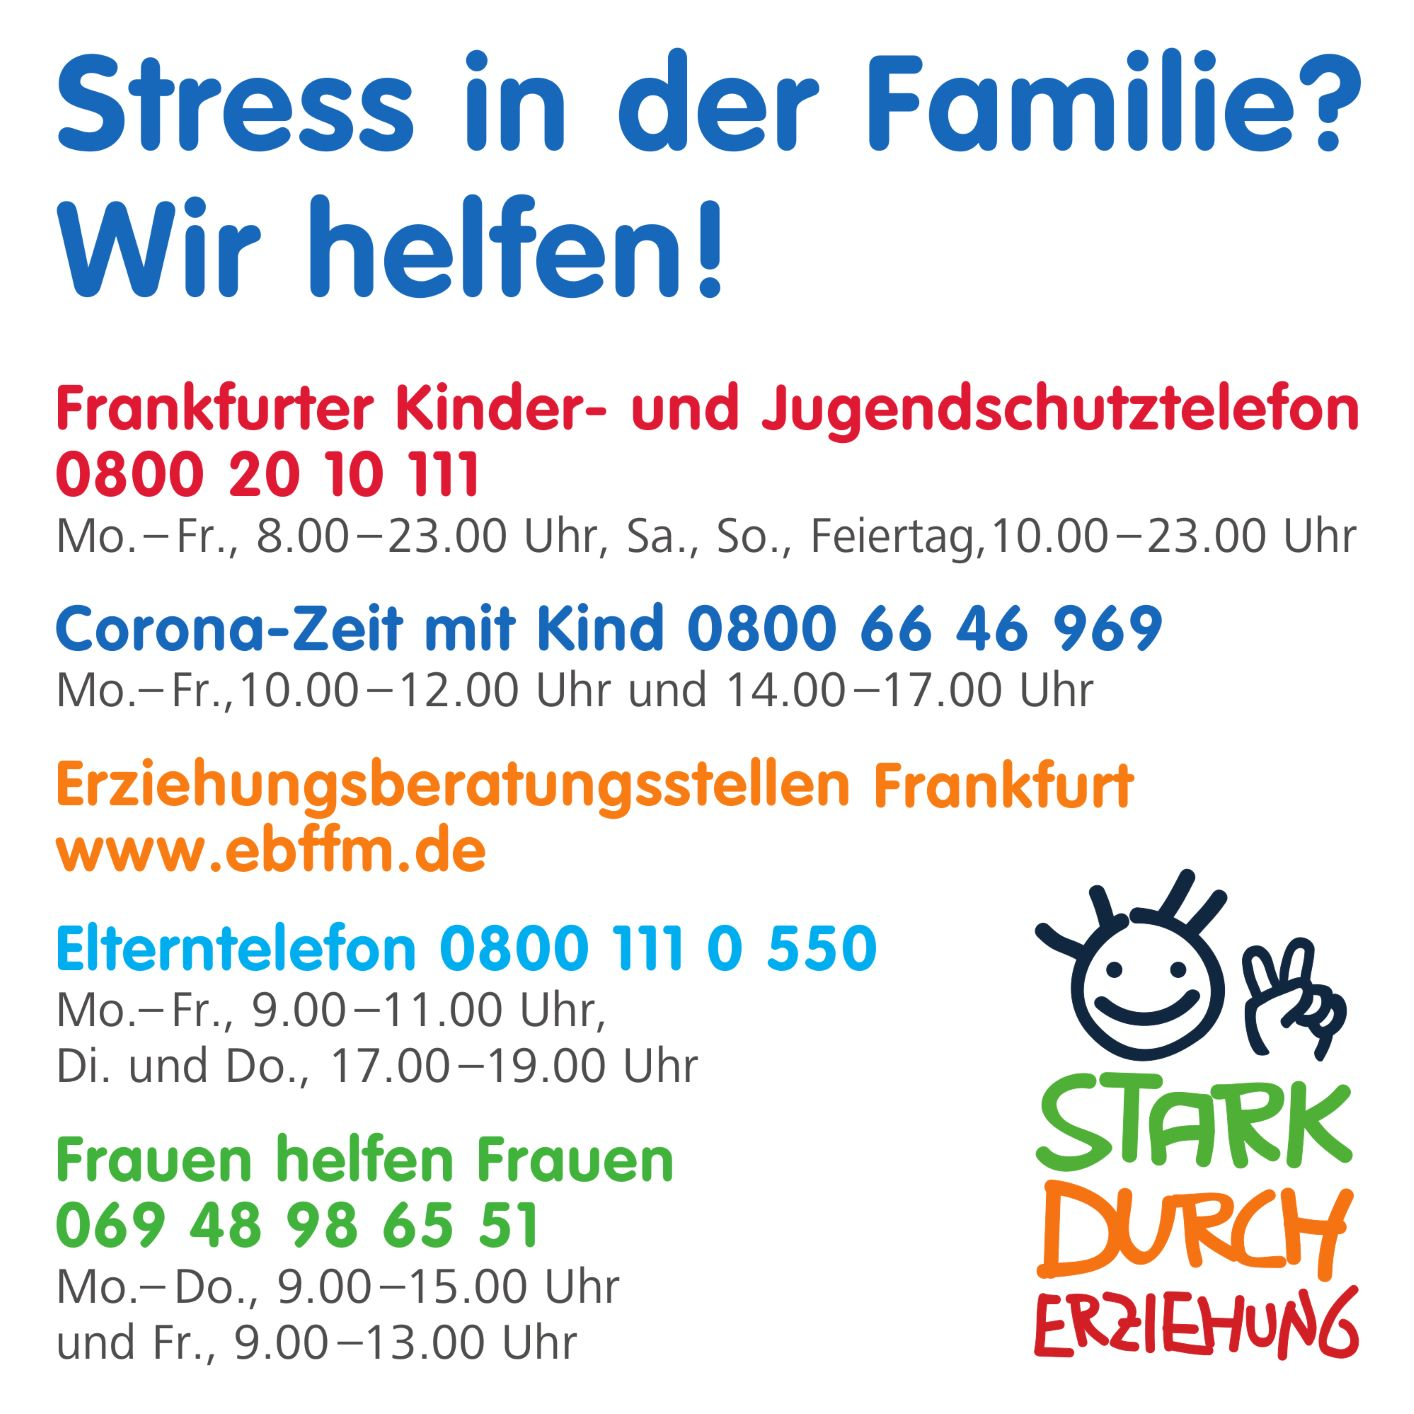 Sticker Stress in der Familie small